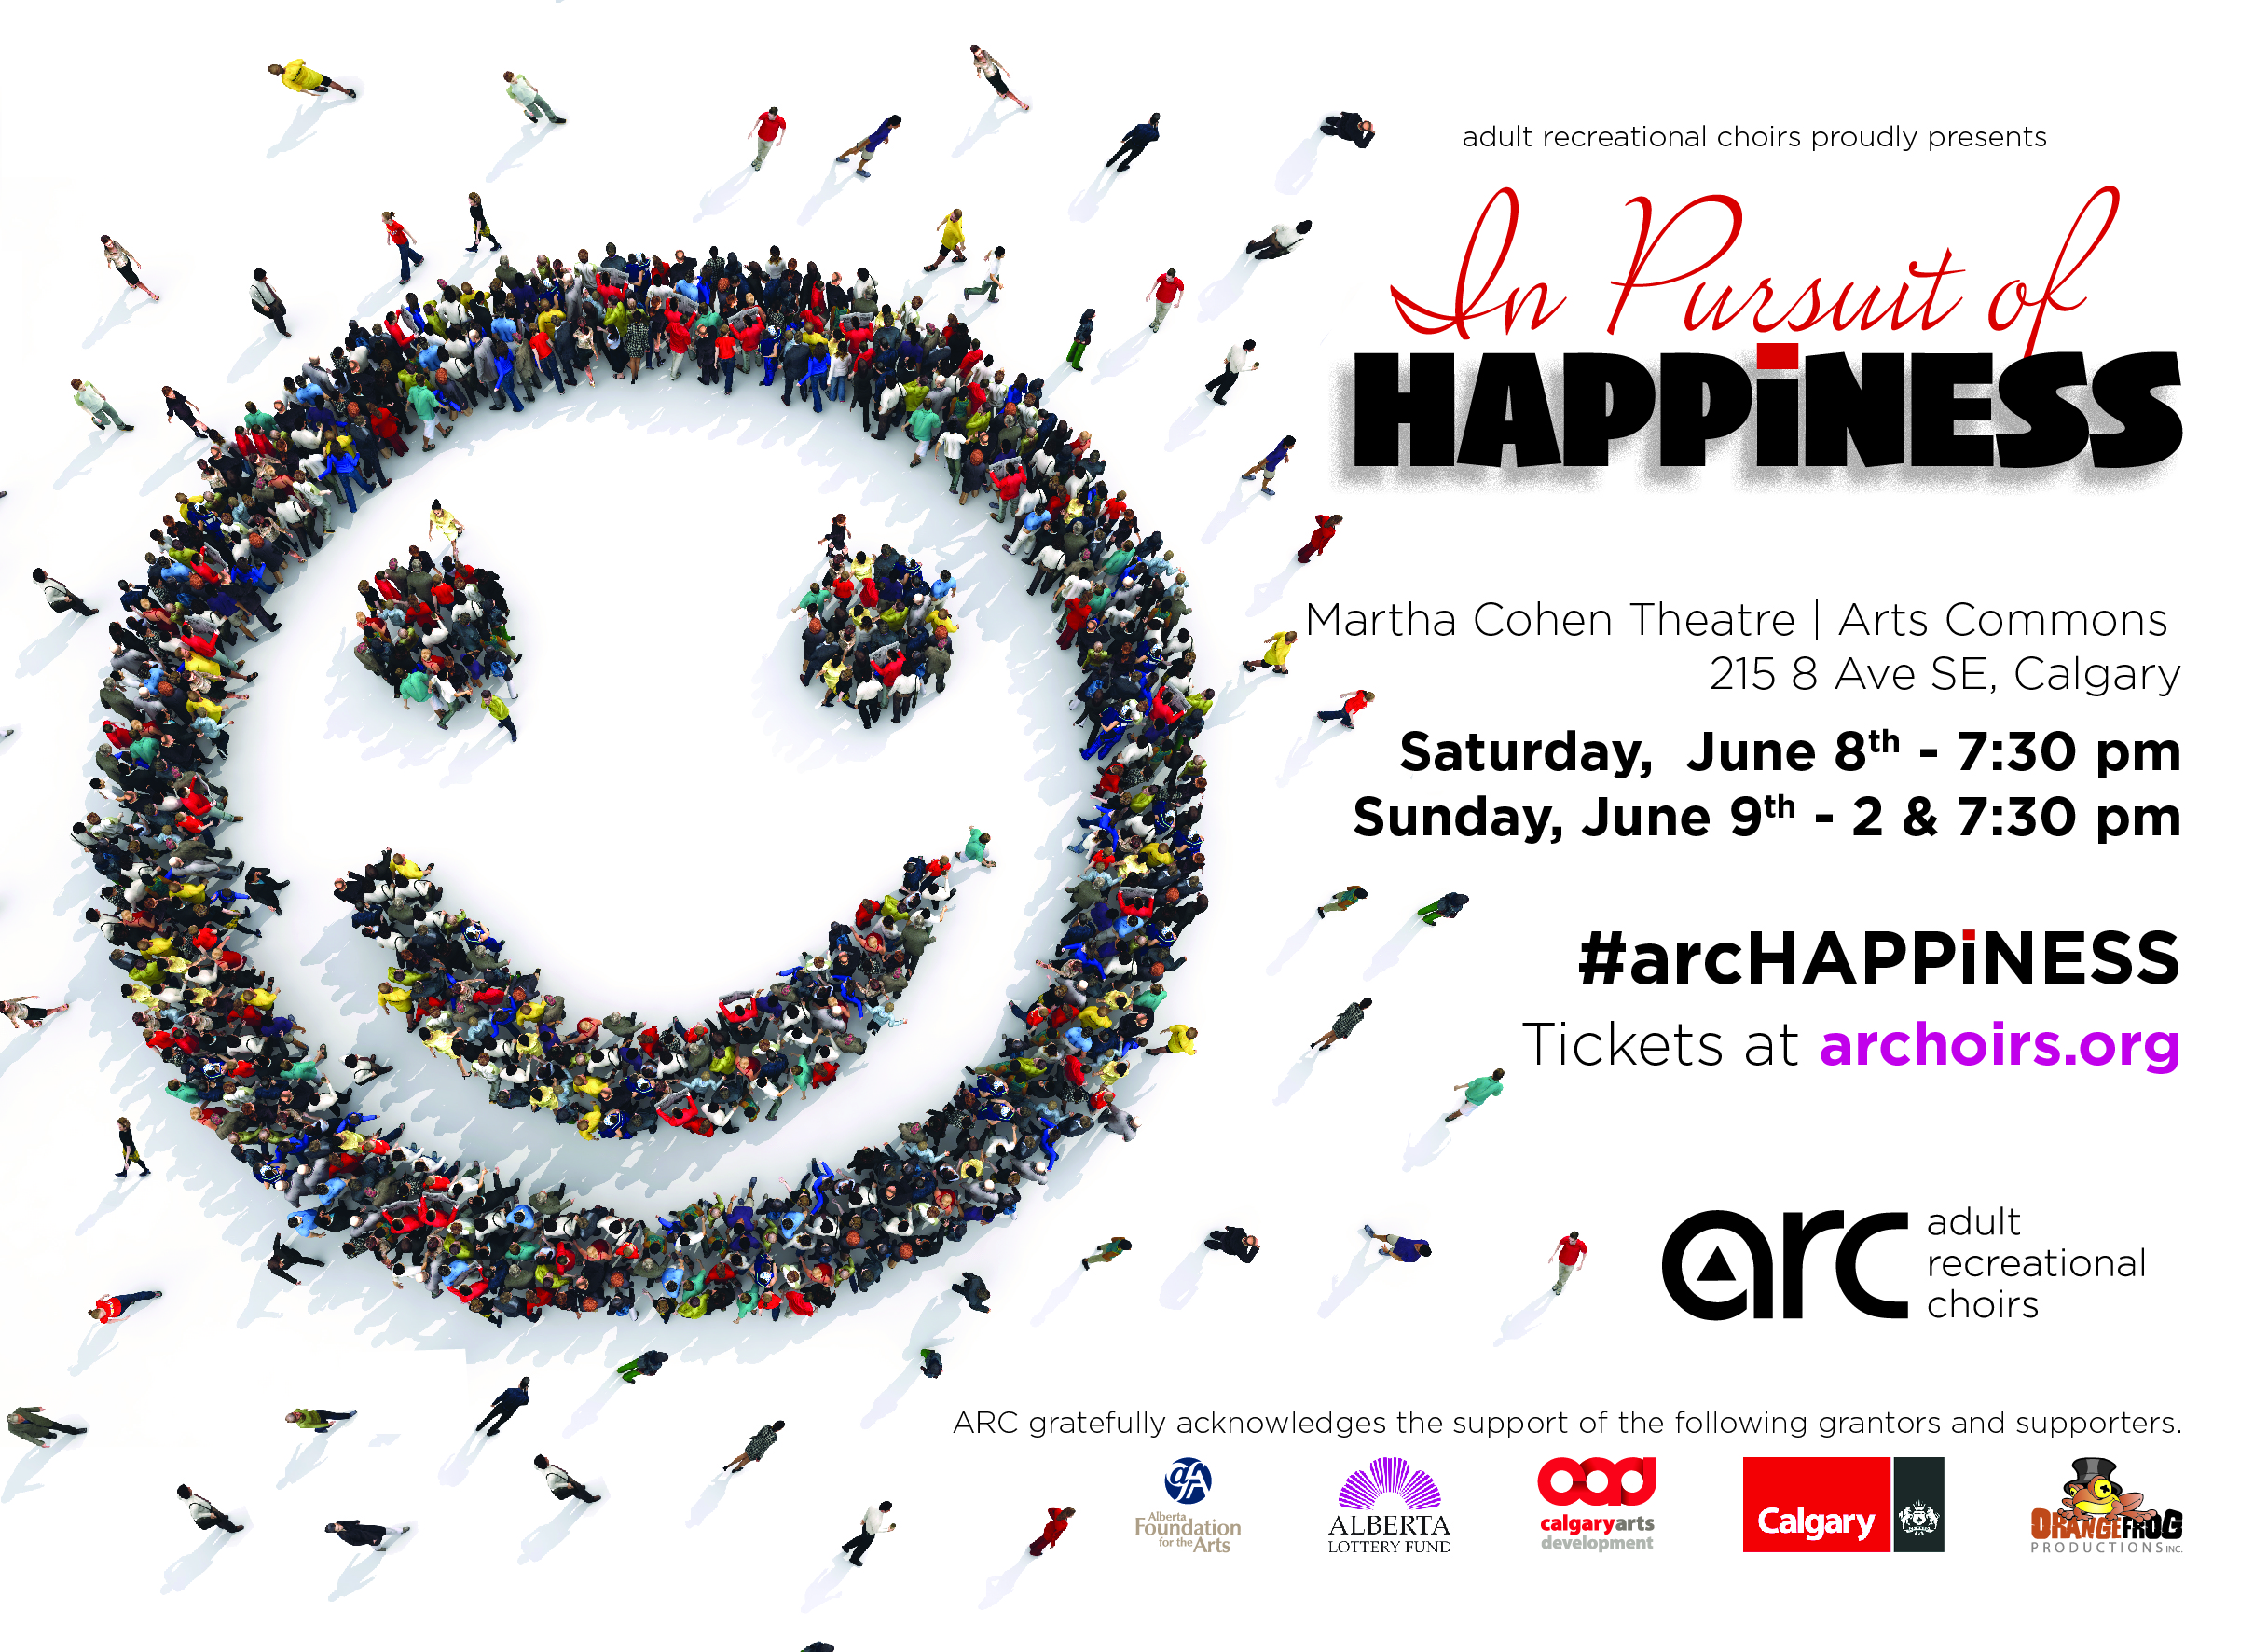 A Year Of Happiness adult recreational choirs in pursuit of happiness